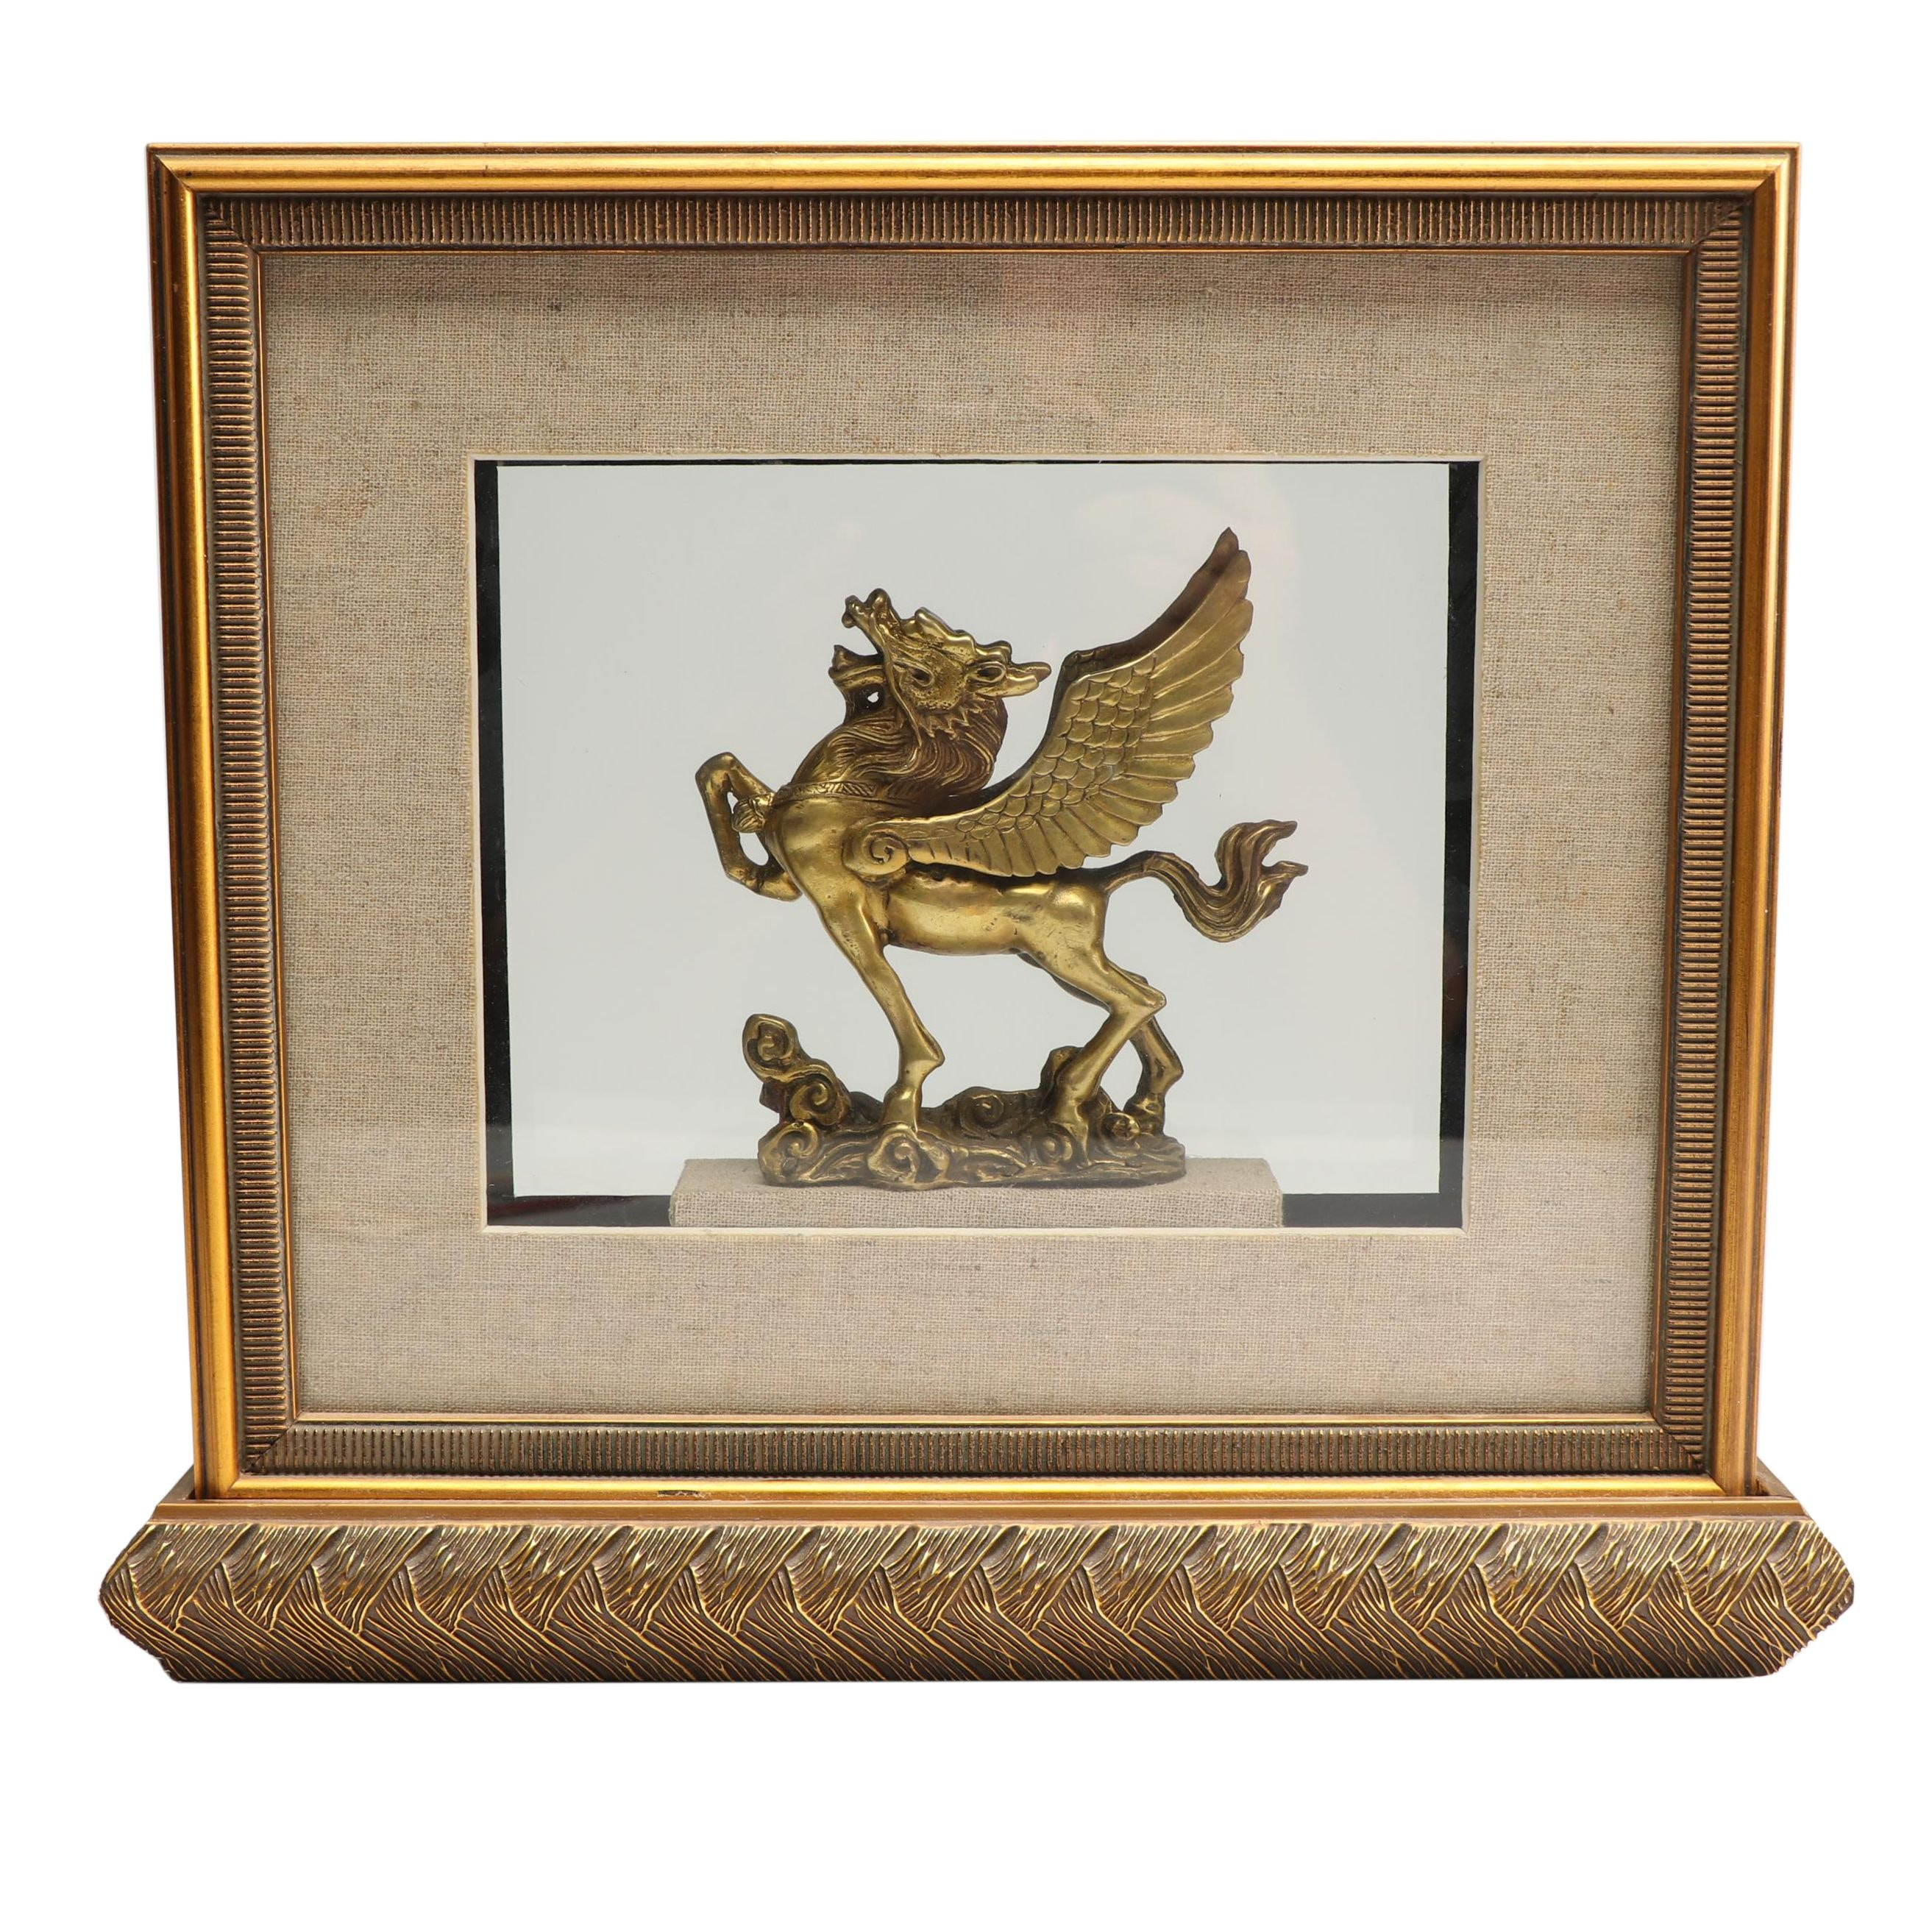 Winged Horse Sculpture in Tabletop Shadowbox